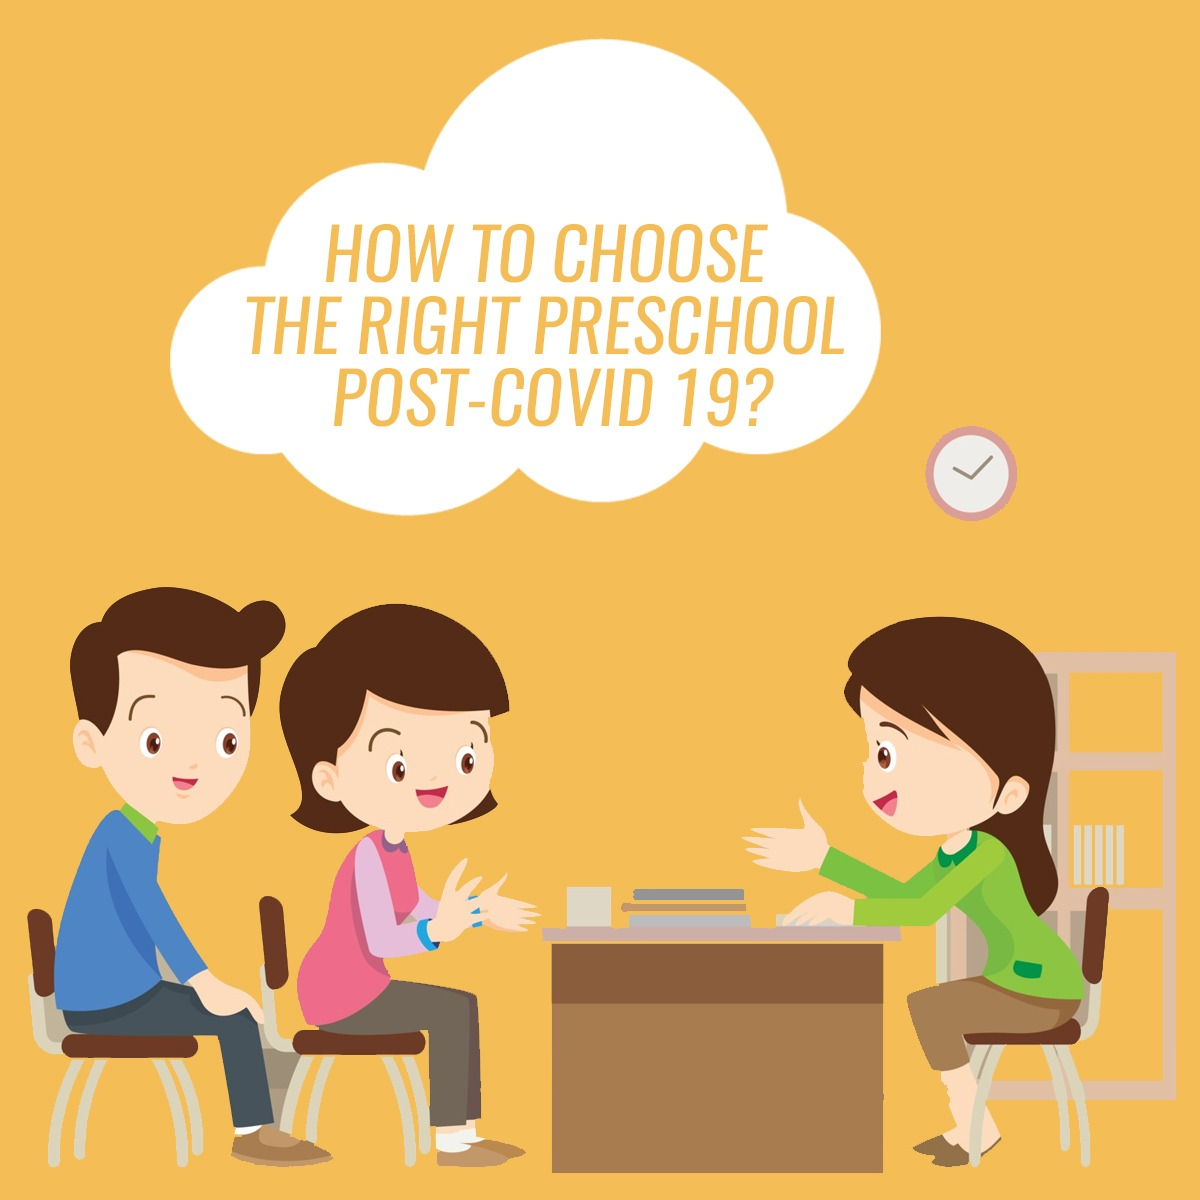 How to choose the right preschool post-COVID 19